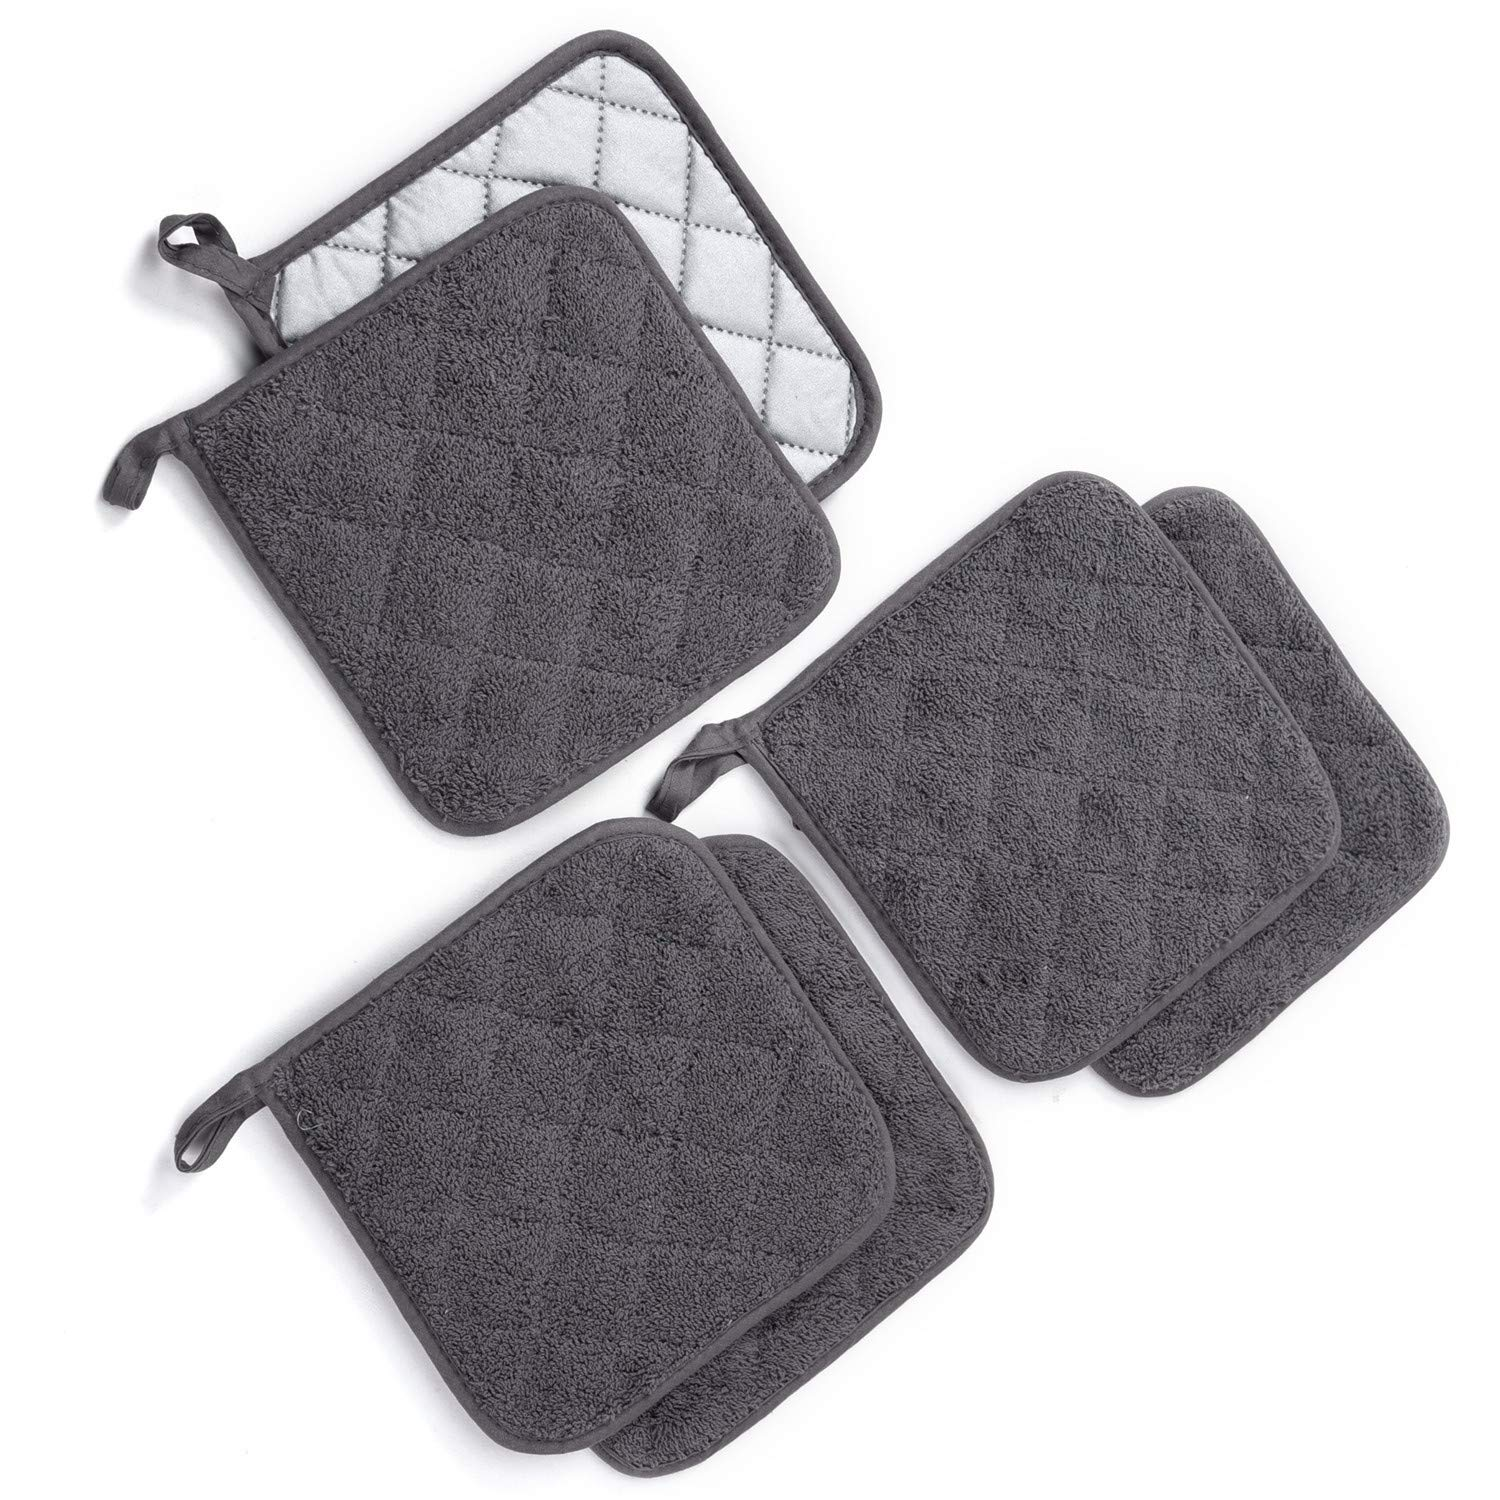 Jennice House Potholders Set, Heat Resistant Hot Pads Mats Coasters Terry Cotton Pot Holders for Cooking and Baking, Set of 6(Gray) by Jennice House